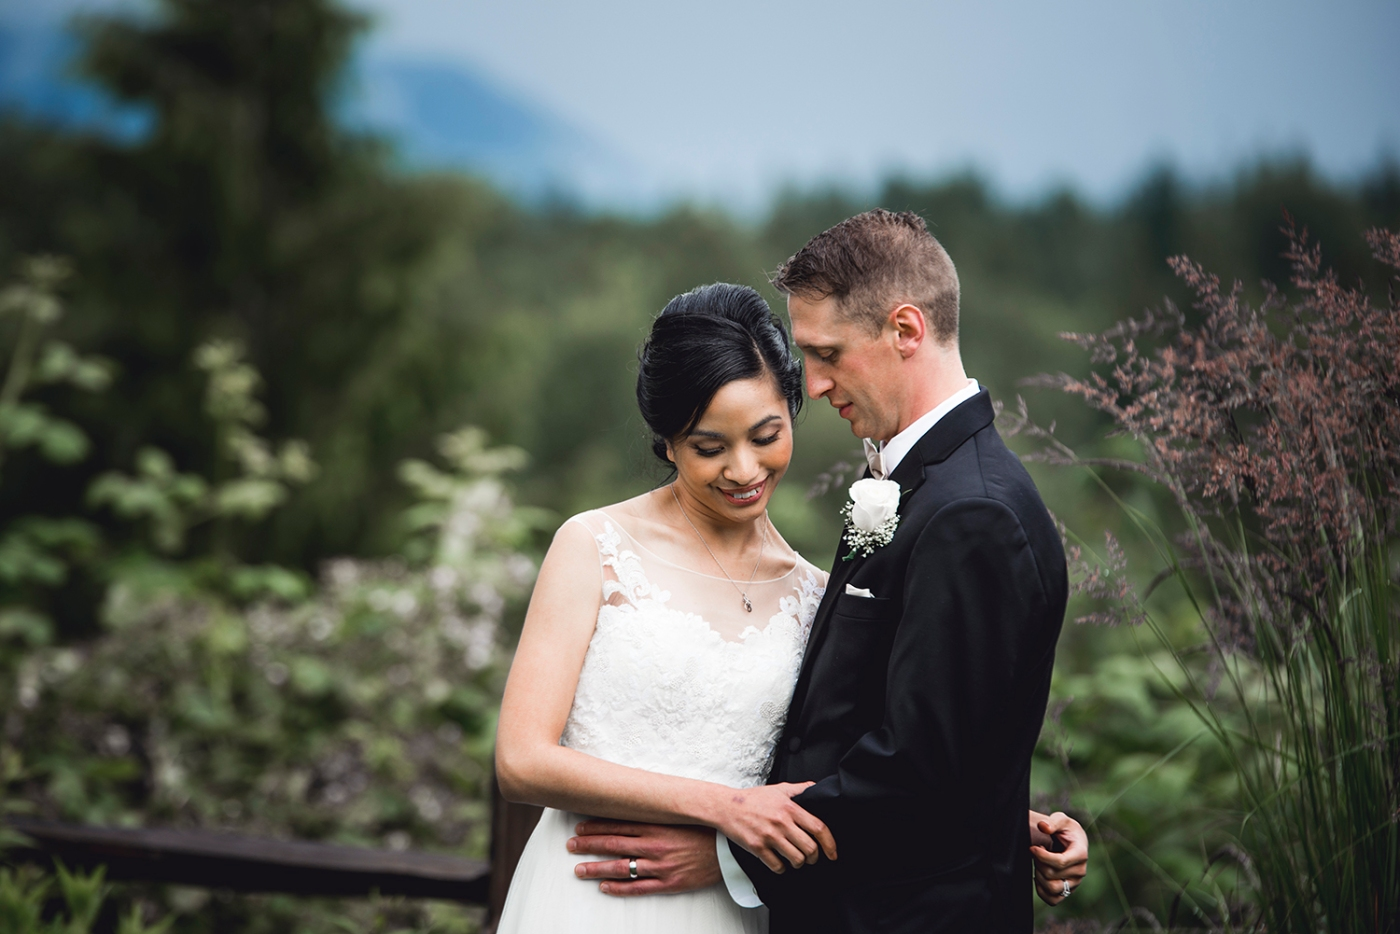 Jane_Speleers_photography_Seattle_Wedding_at_Wild_Rose_estate_2016_Julienne_and_Brian_bride_groom_ DSC_0383